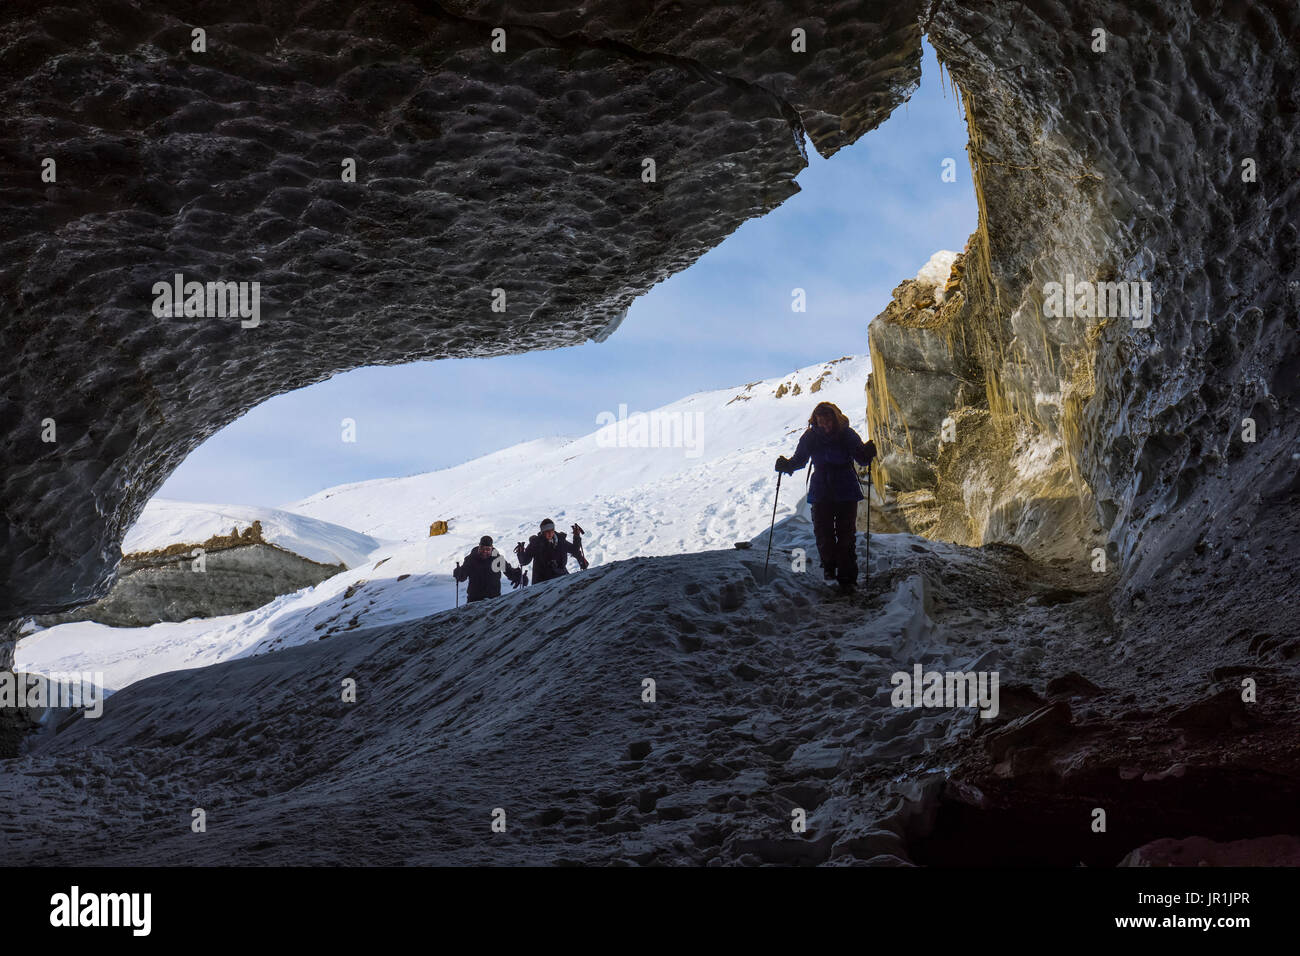 Hikers Enter An Ice Cave Within Castner Glacier In The Alaska Range. - Stock Image